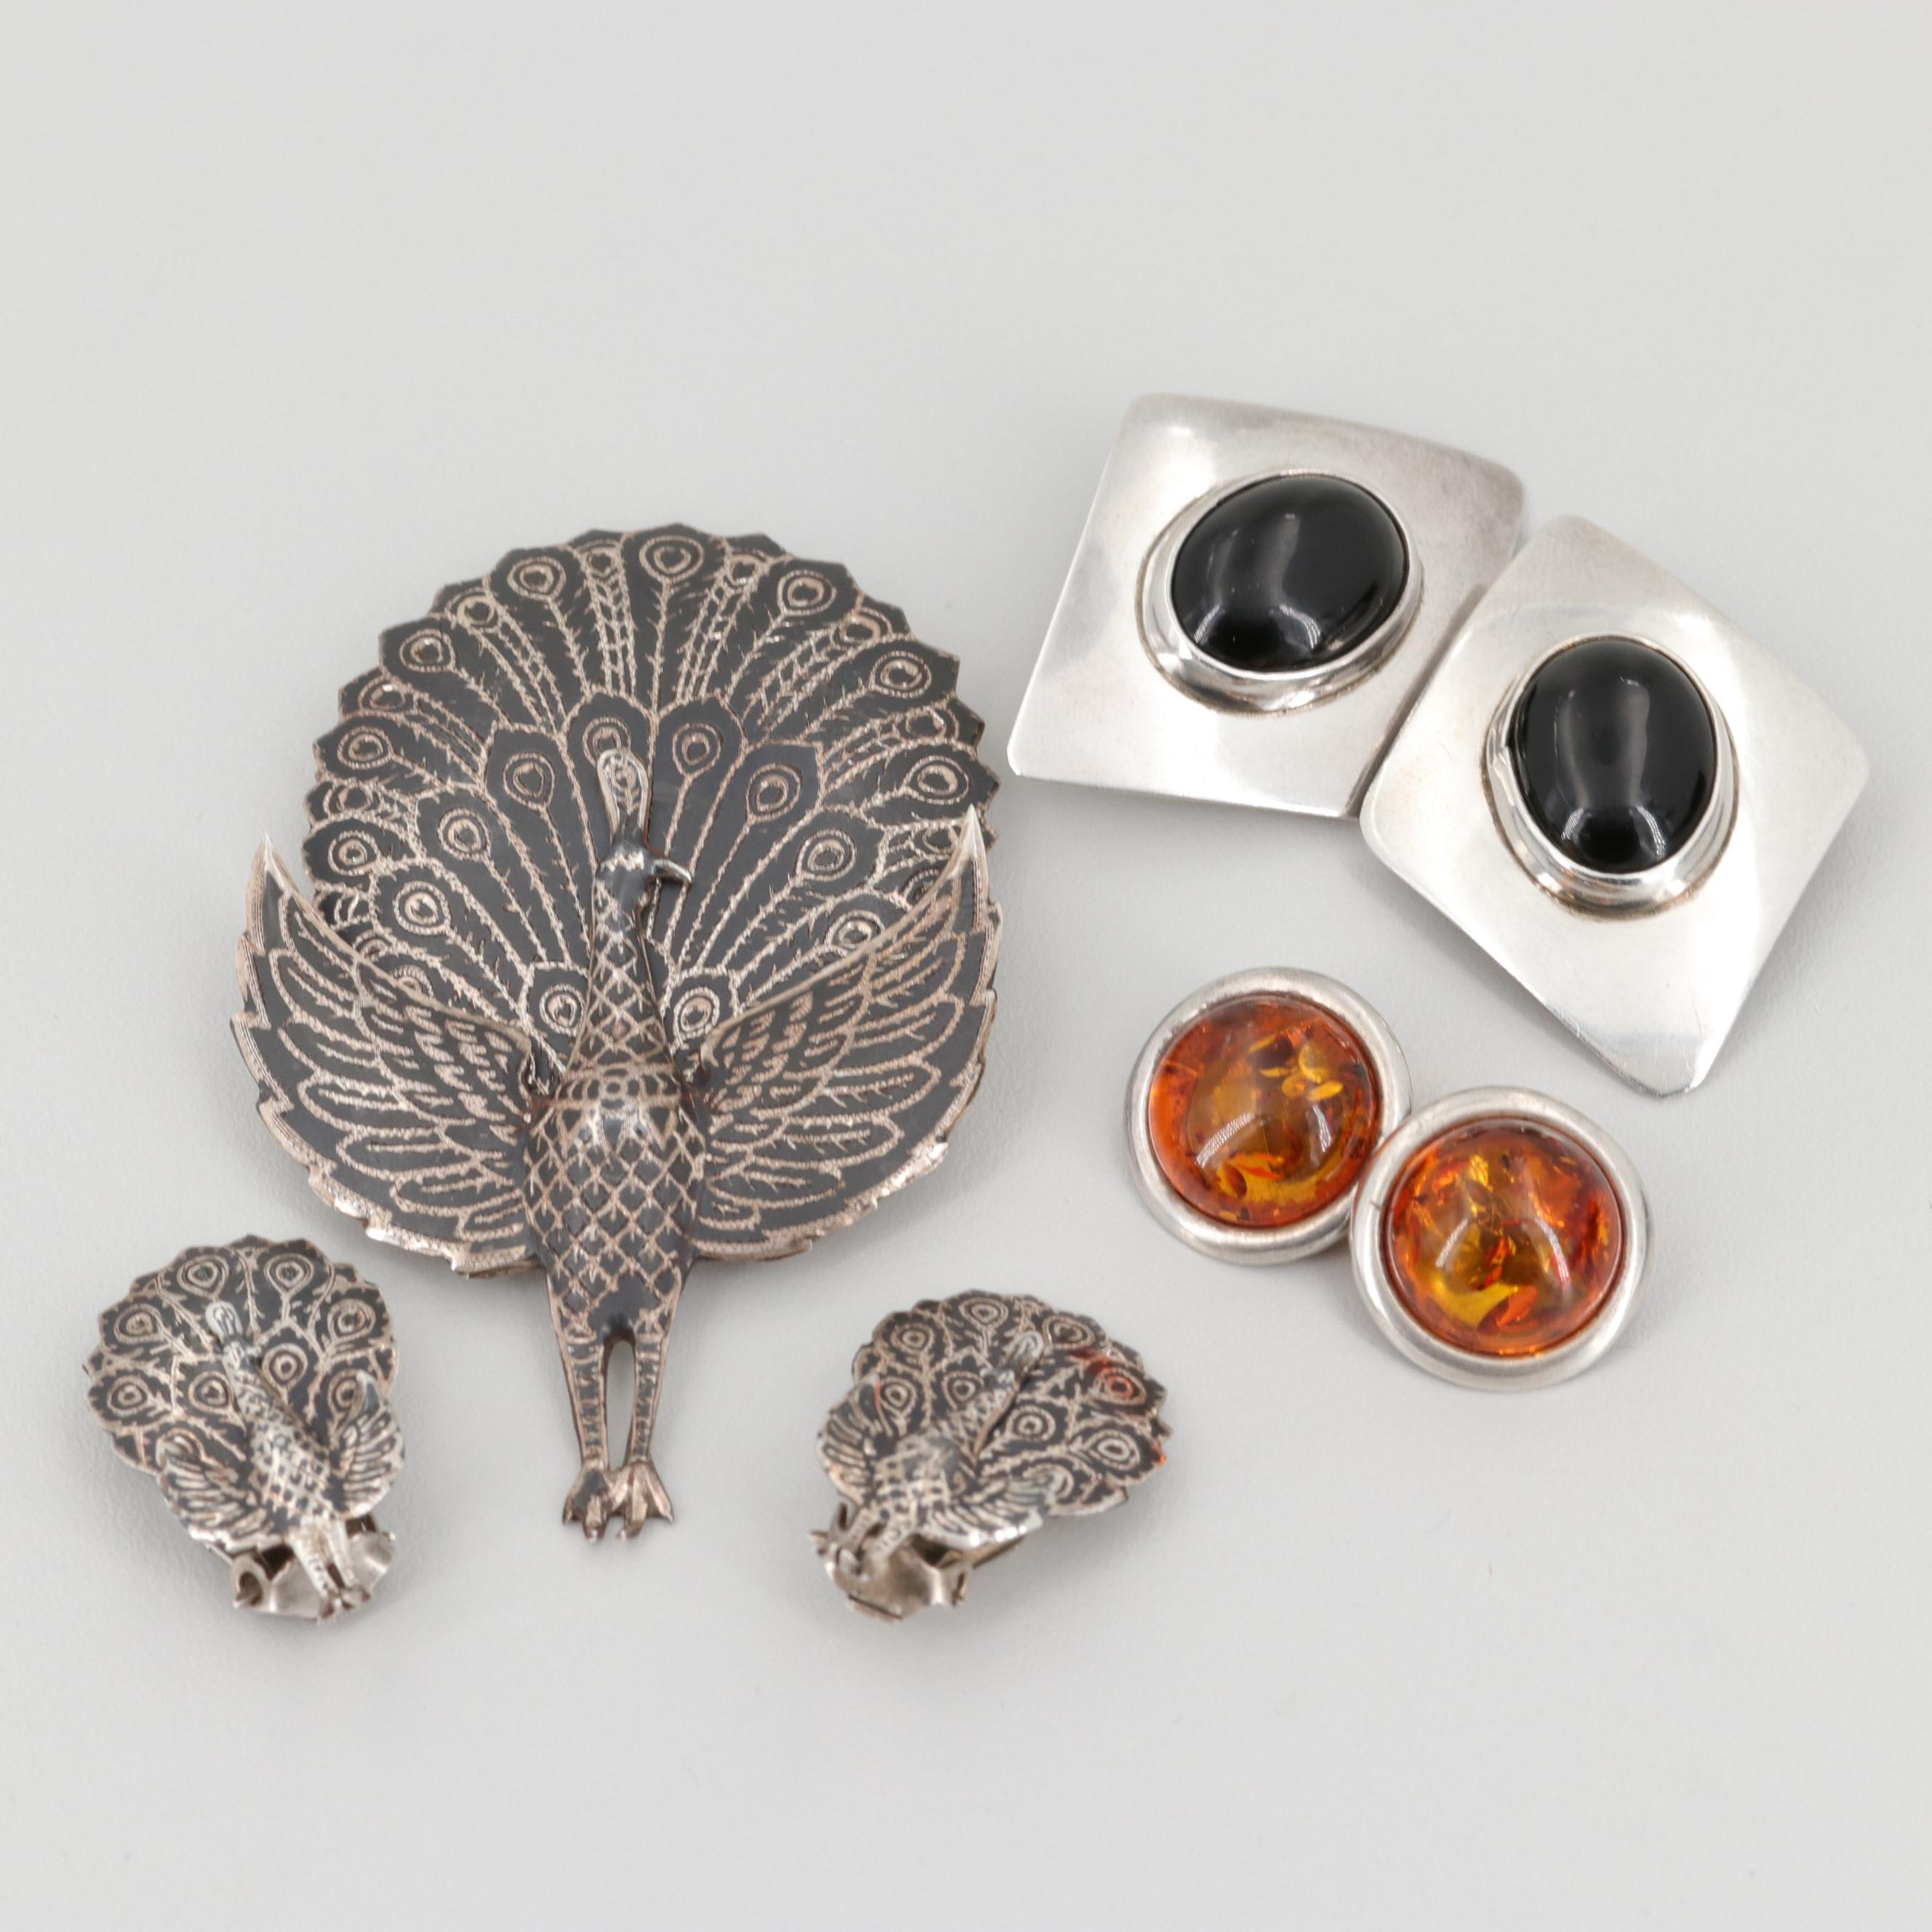 Sterling Silver Amber and Obsidian Earrings with Siam Niello Enamel Brooch